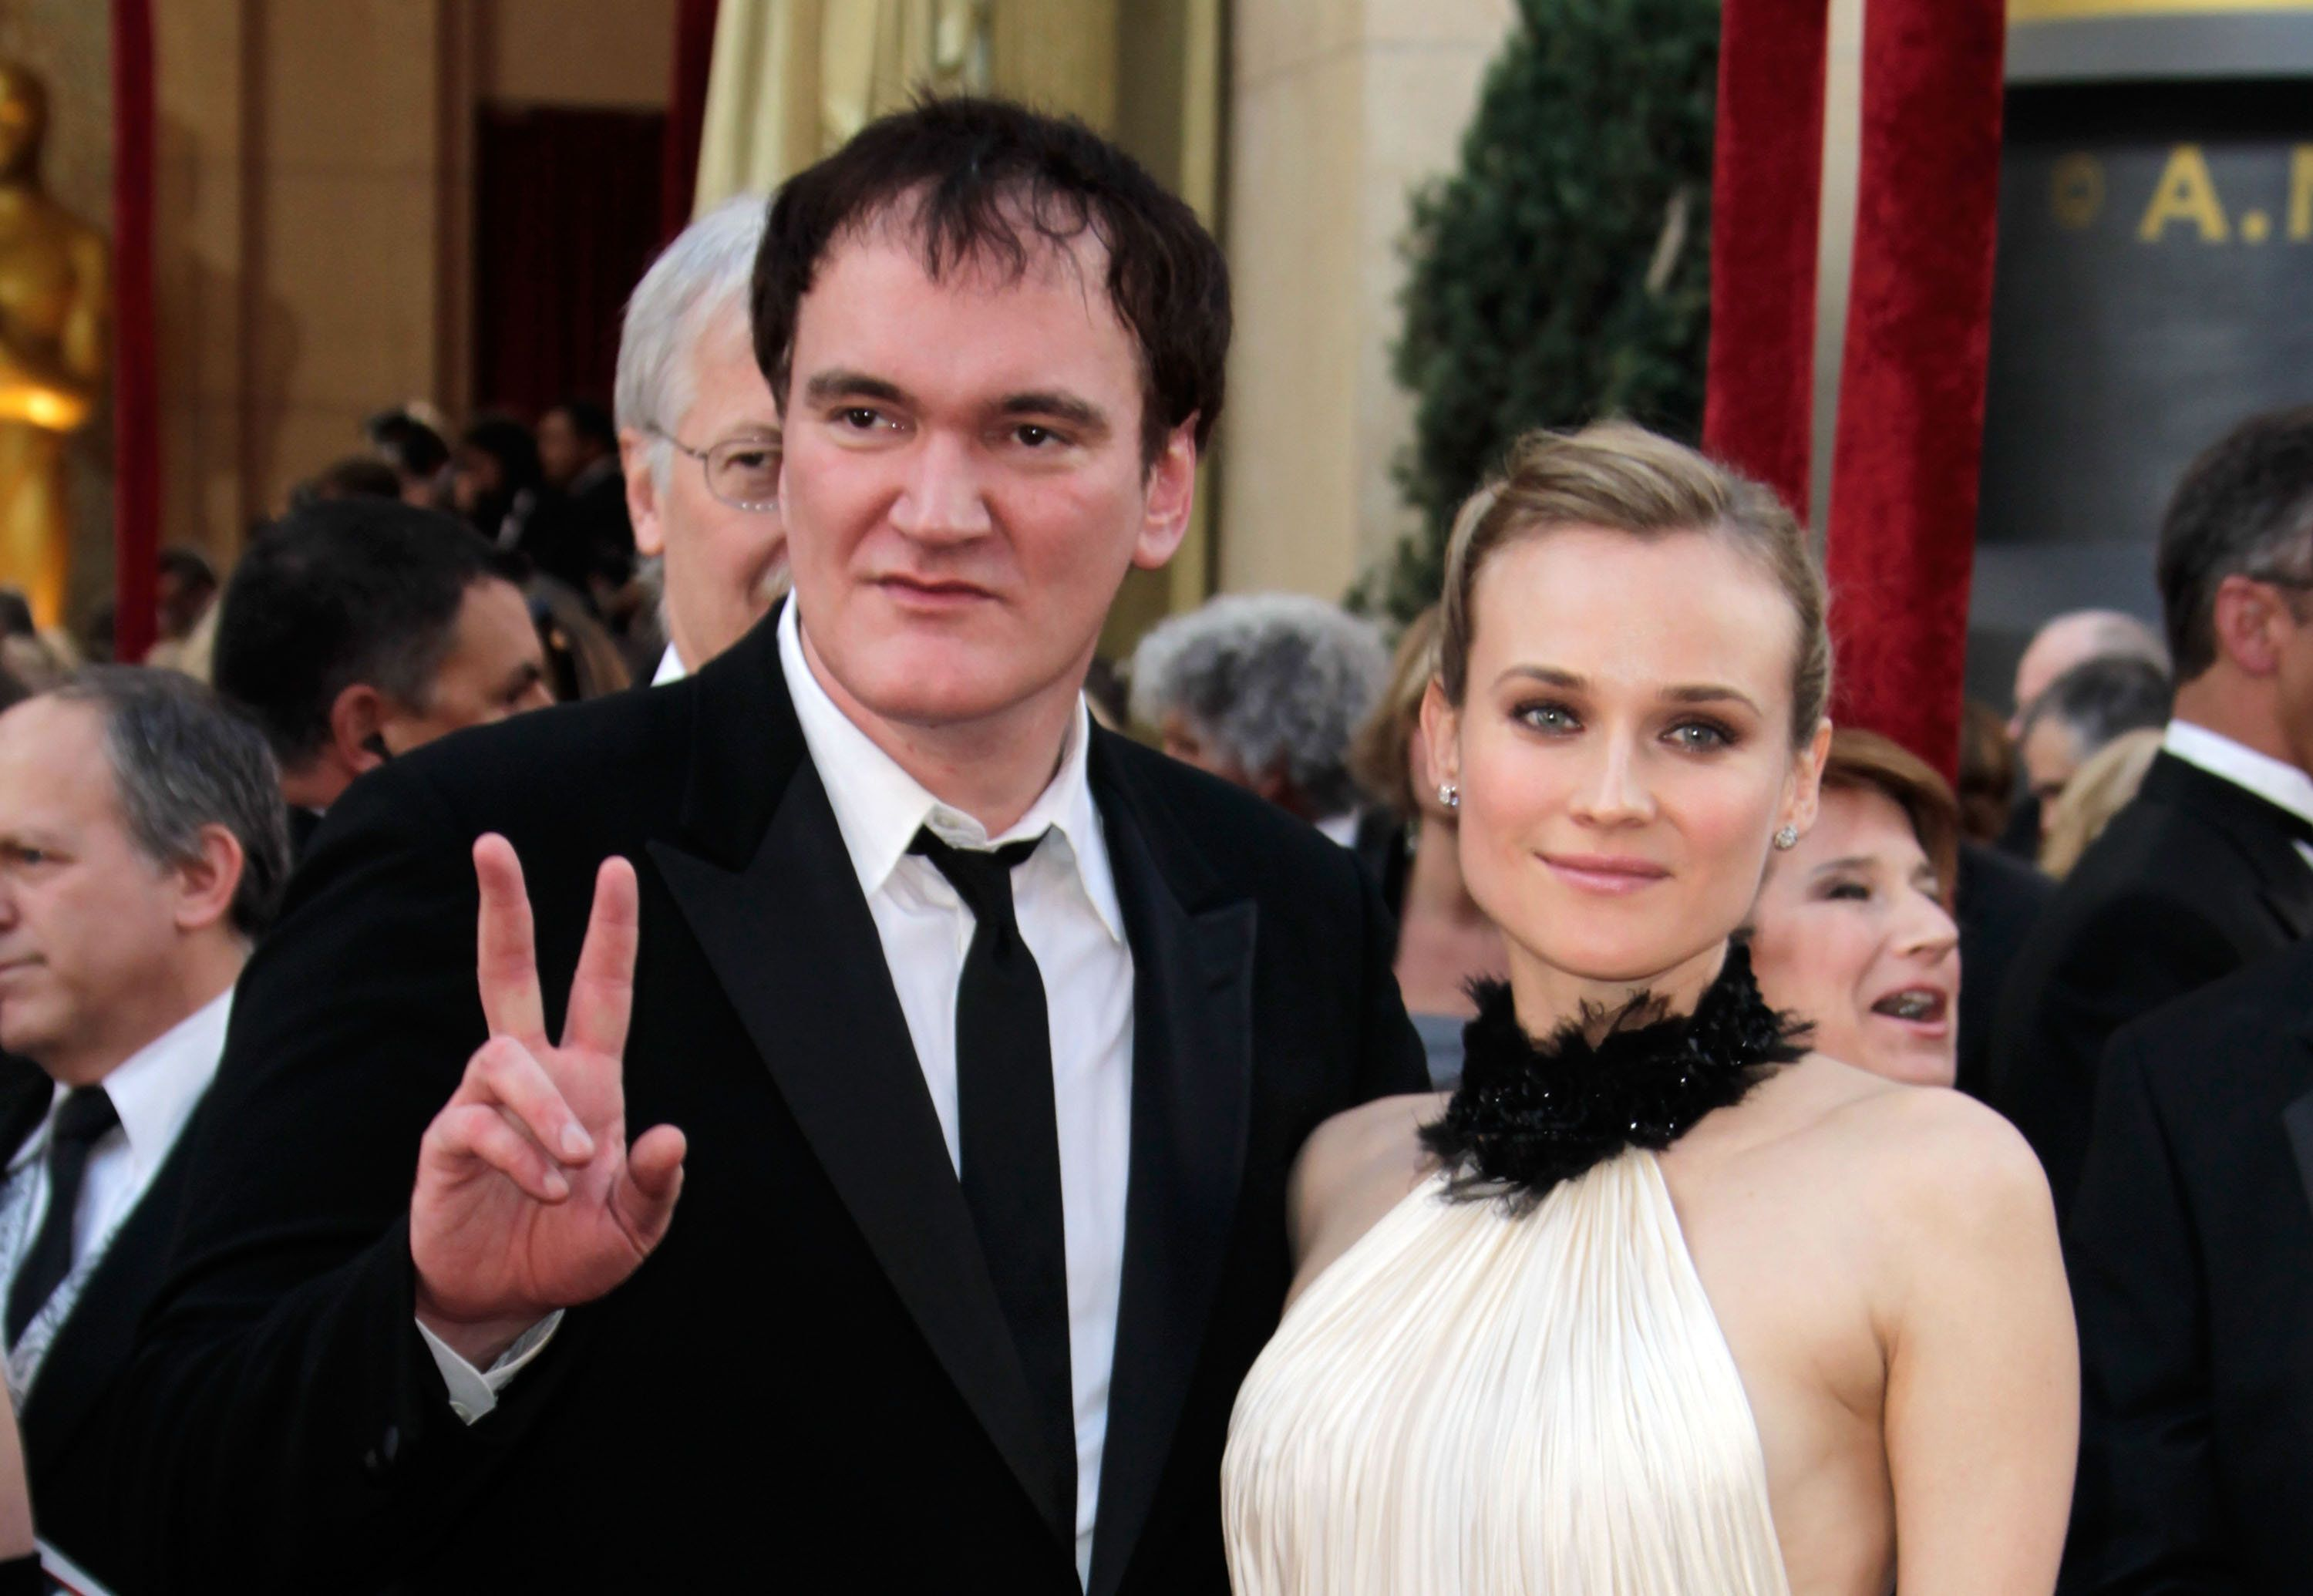 Writer/ Director Quentin Tarantino and Actress Diane Kruger arrive at the 82nd Annual Academy Awards held at the Kodak Theatre on March 7, 2010 in Hollywood, California. (Photo by Jeff Vespa/WireImage)